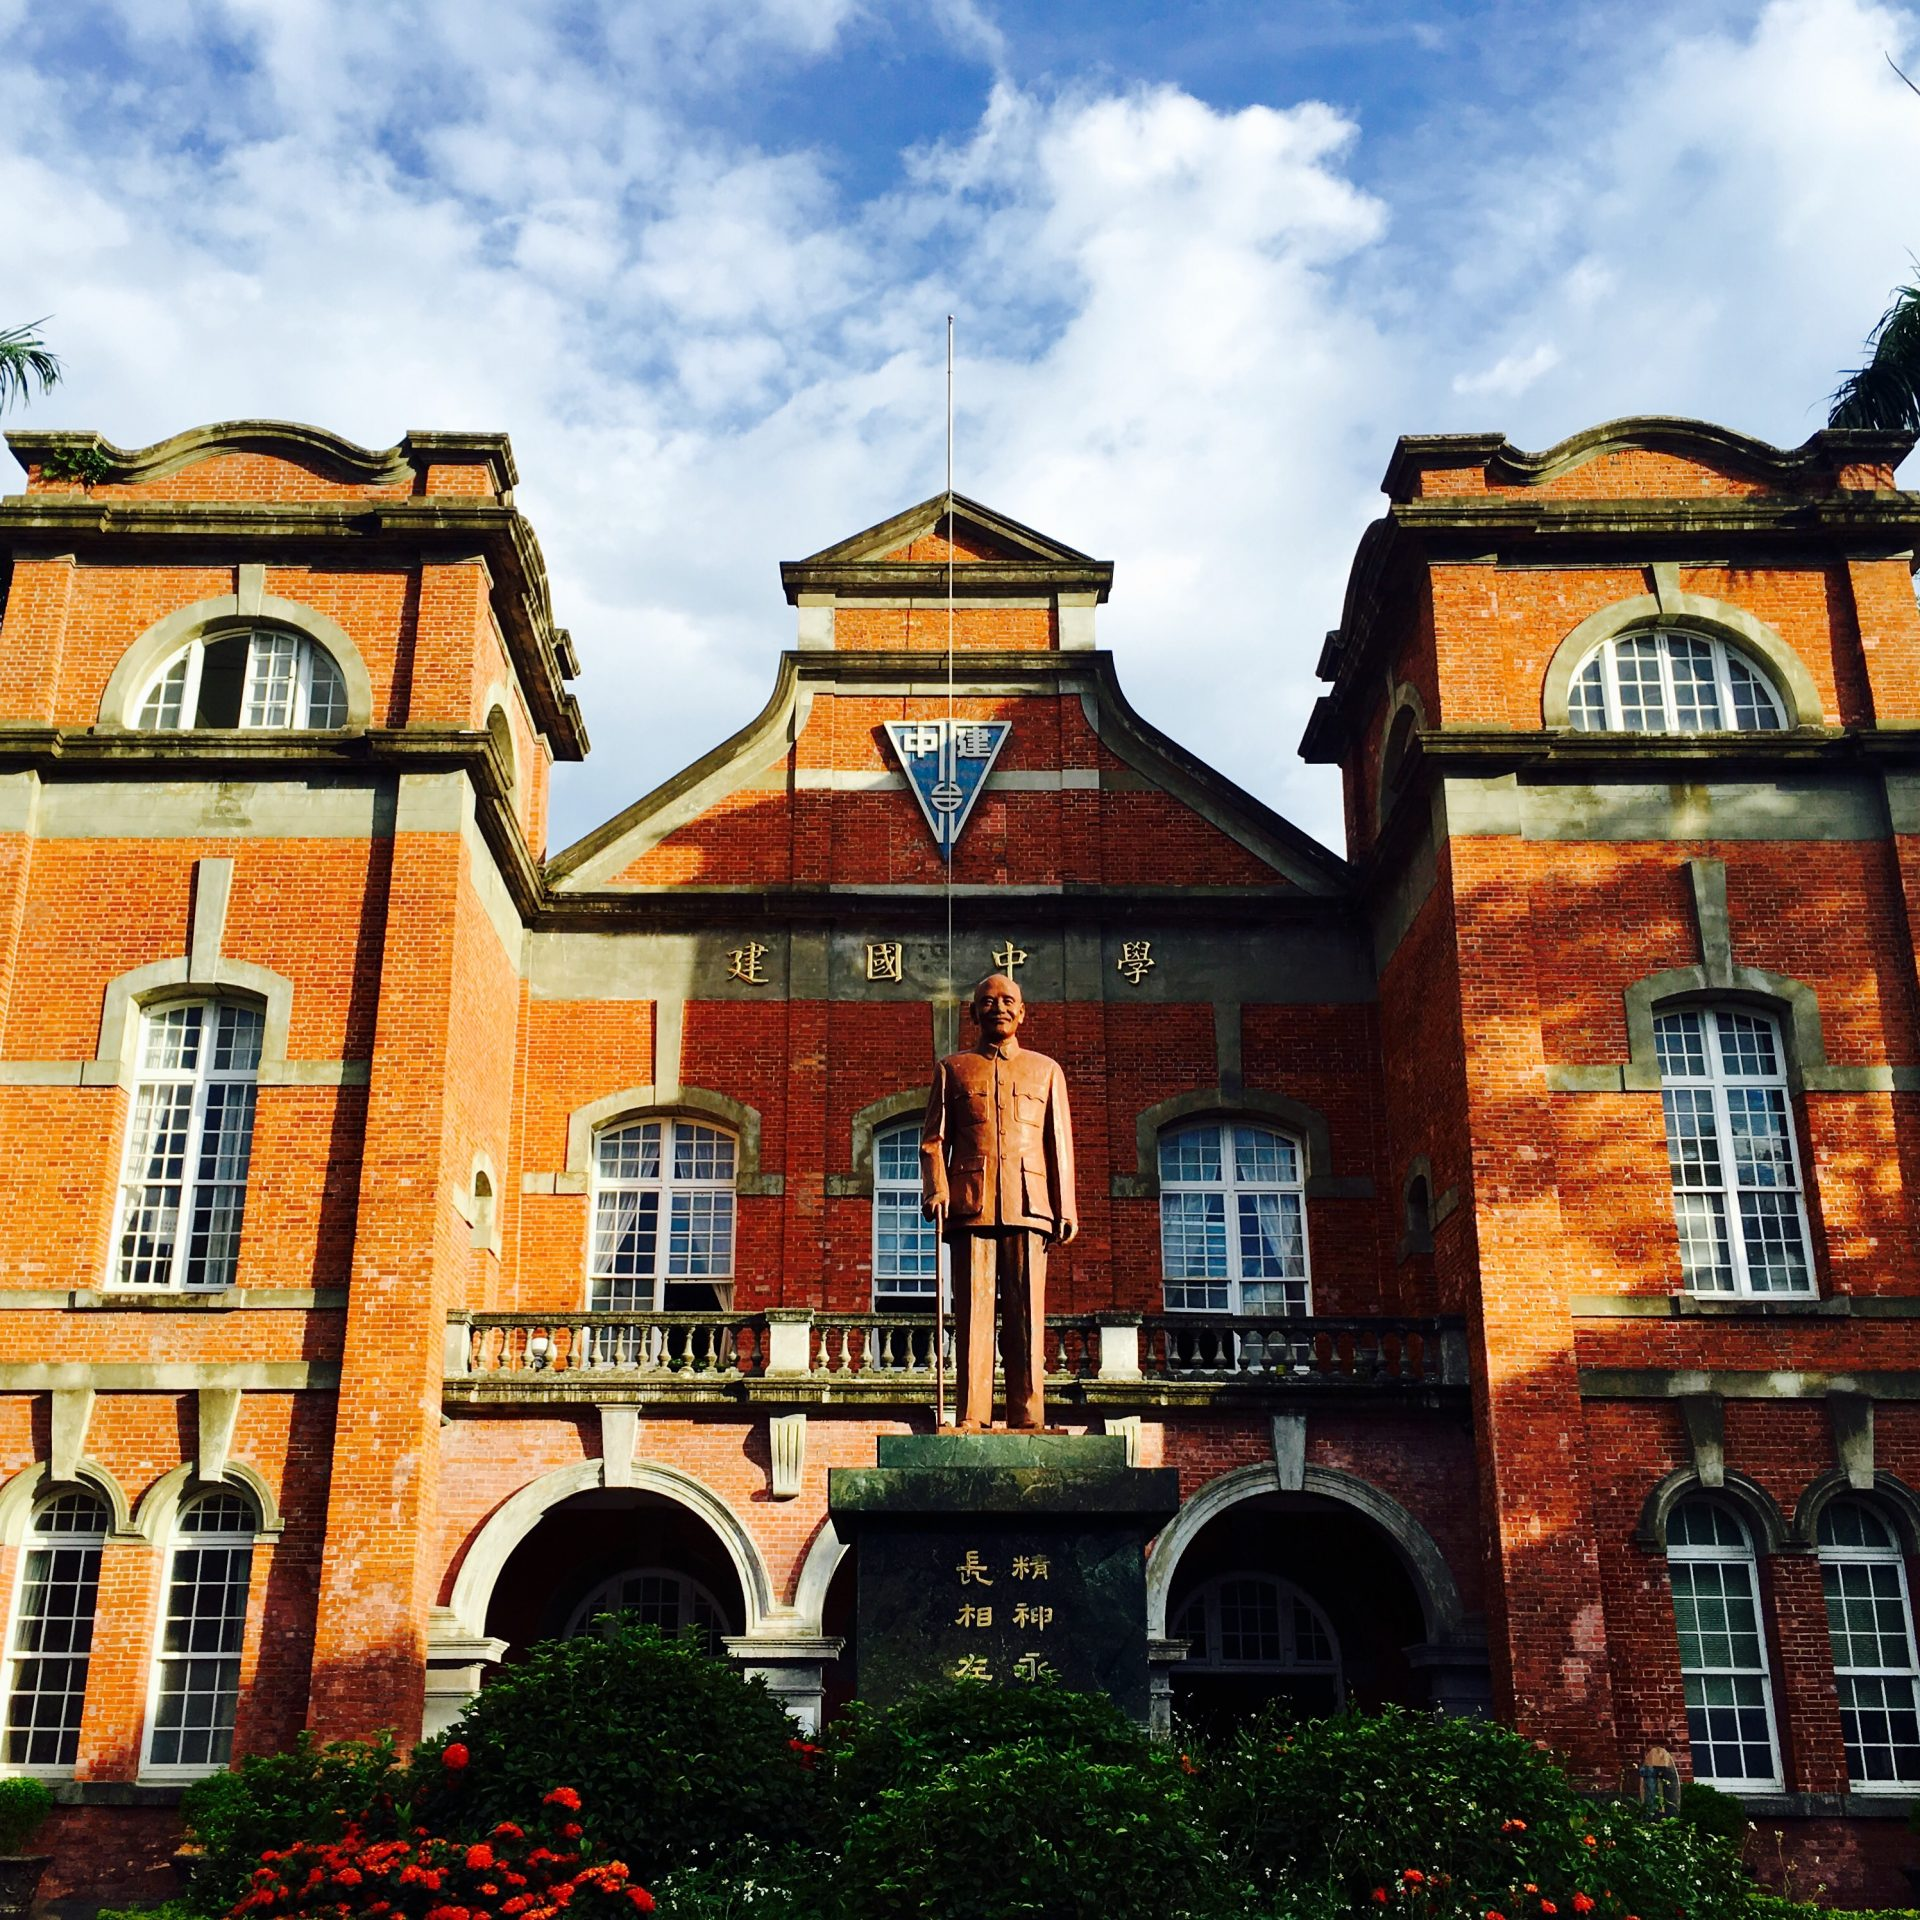 The Red House in Taipei Municipal Jianguo Senior High School was designated as one of Taipei's historical buildings.(Image: Courtesy of Terry Lee)